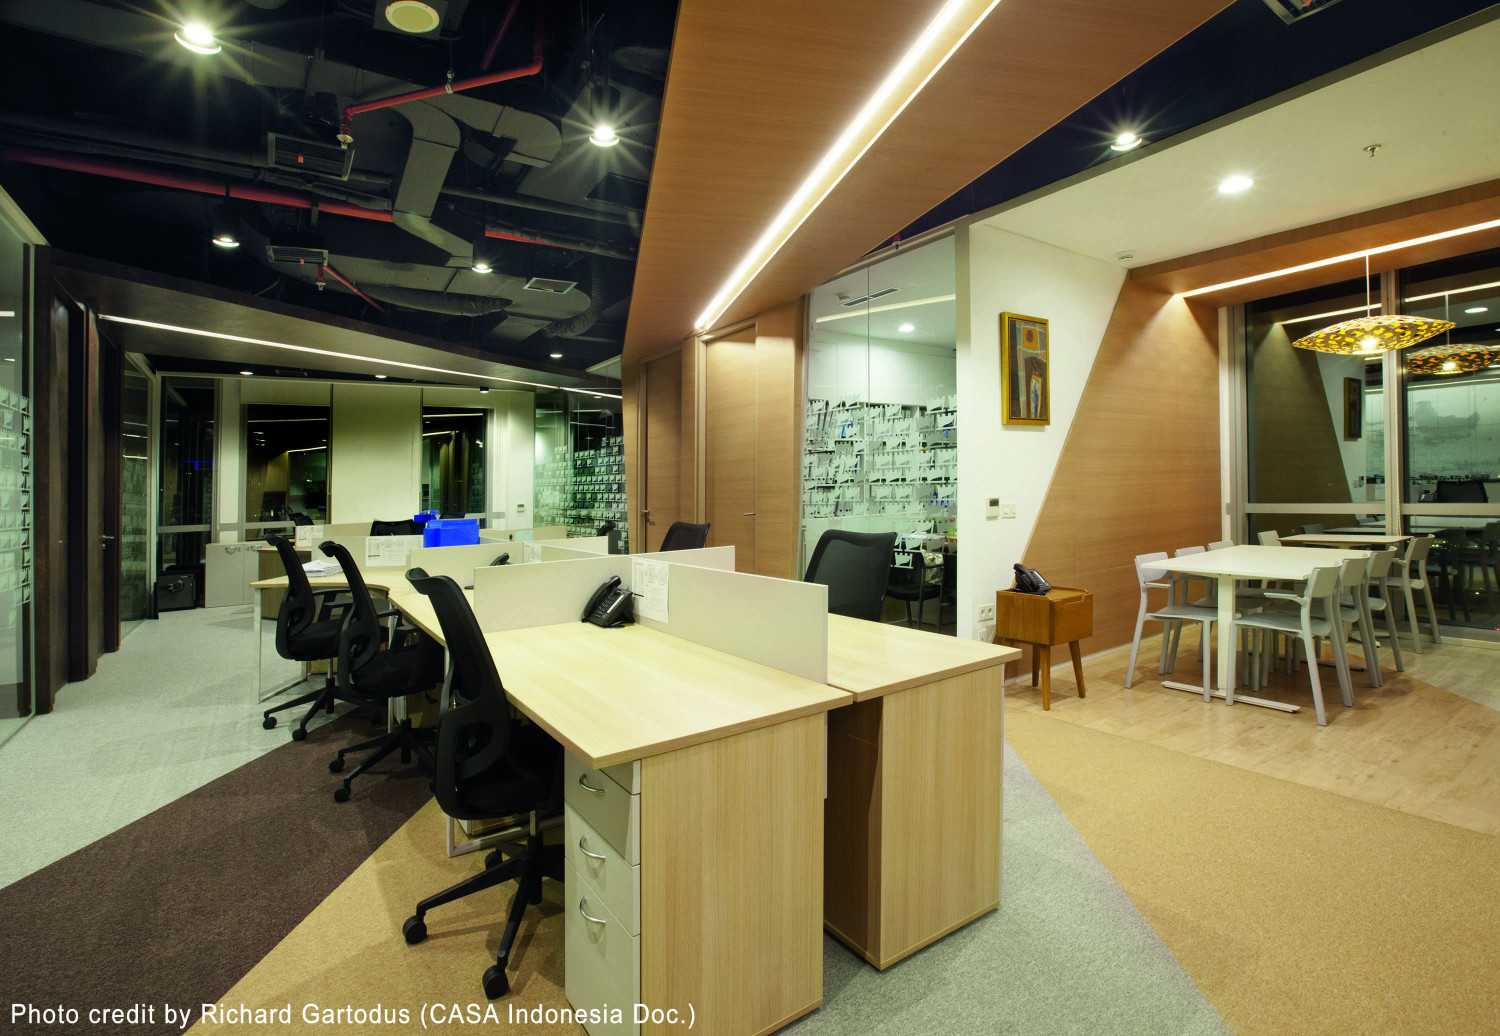 Tms Creative Pt Castlerock Consulting Office  Kebayoran Baru Jakarta Kebayoran Baru Jakarta Tms-Catlerock-06 Modern 39494